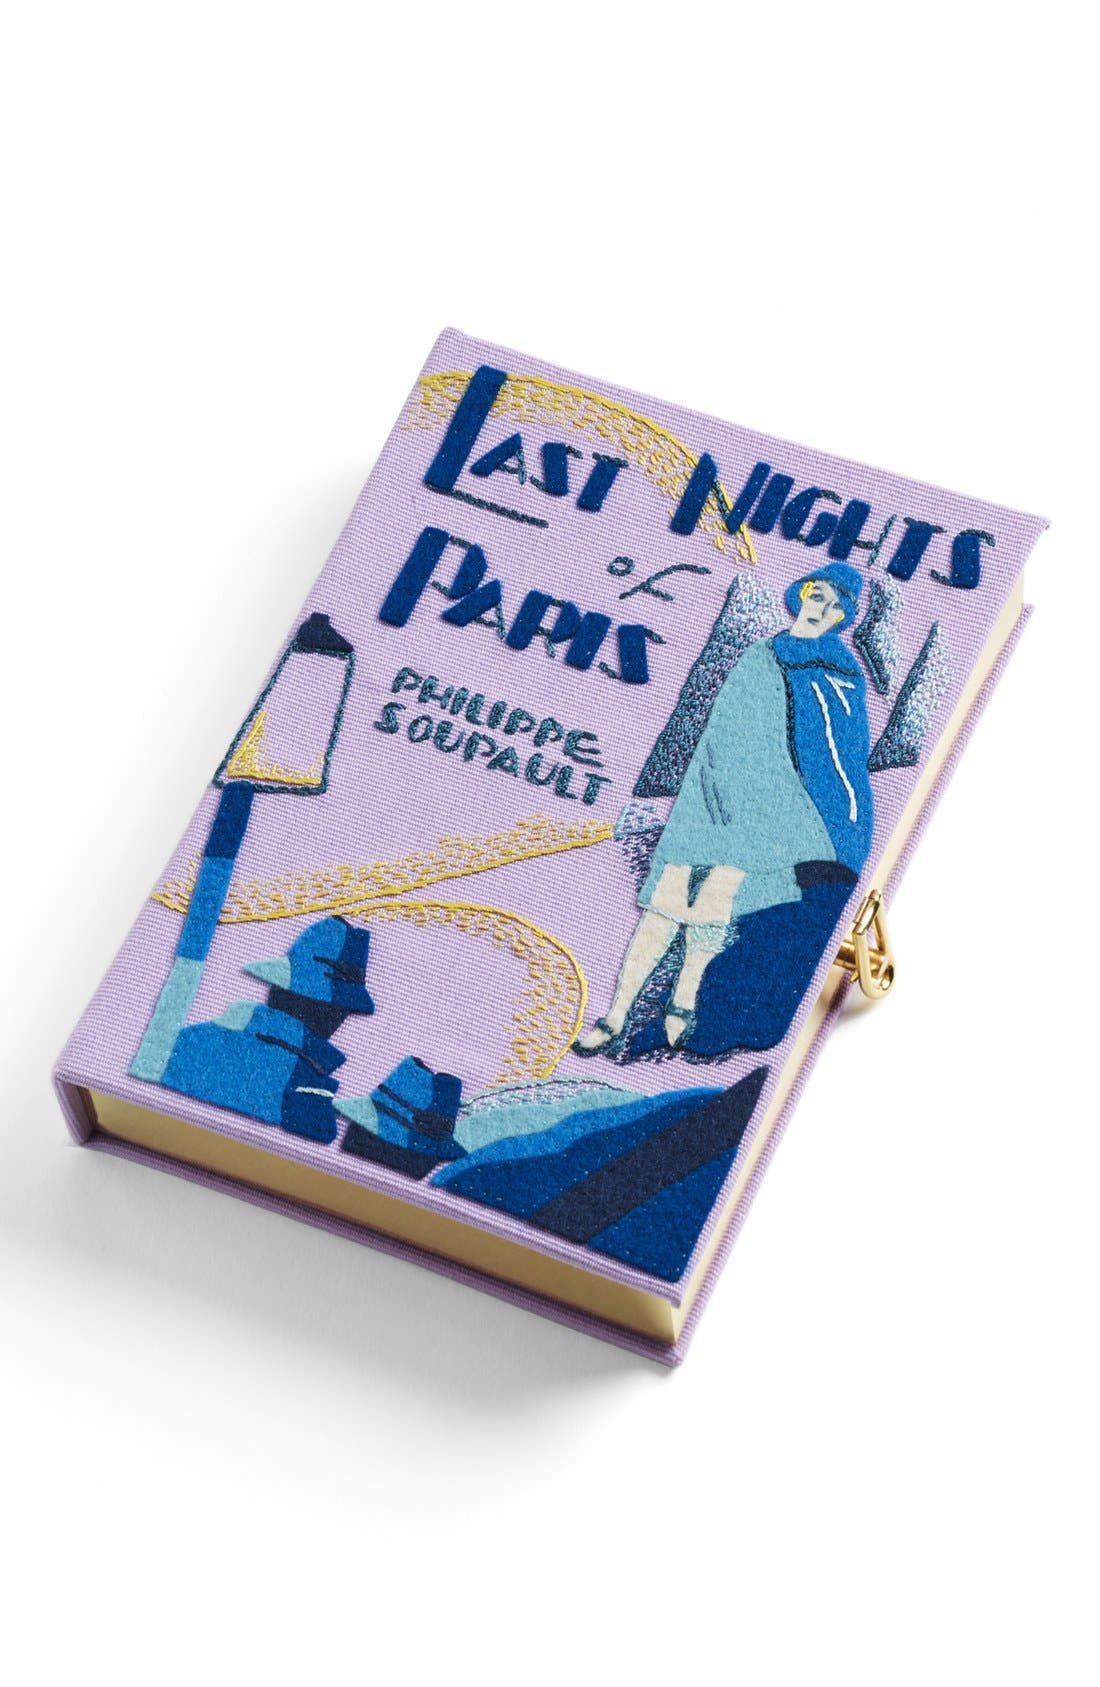 Main Image - Olympia Le-Tan 'Last Nights of Paris' Limited Edition Clutch